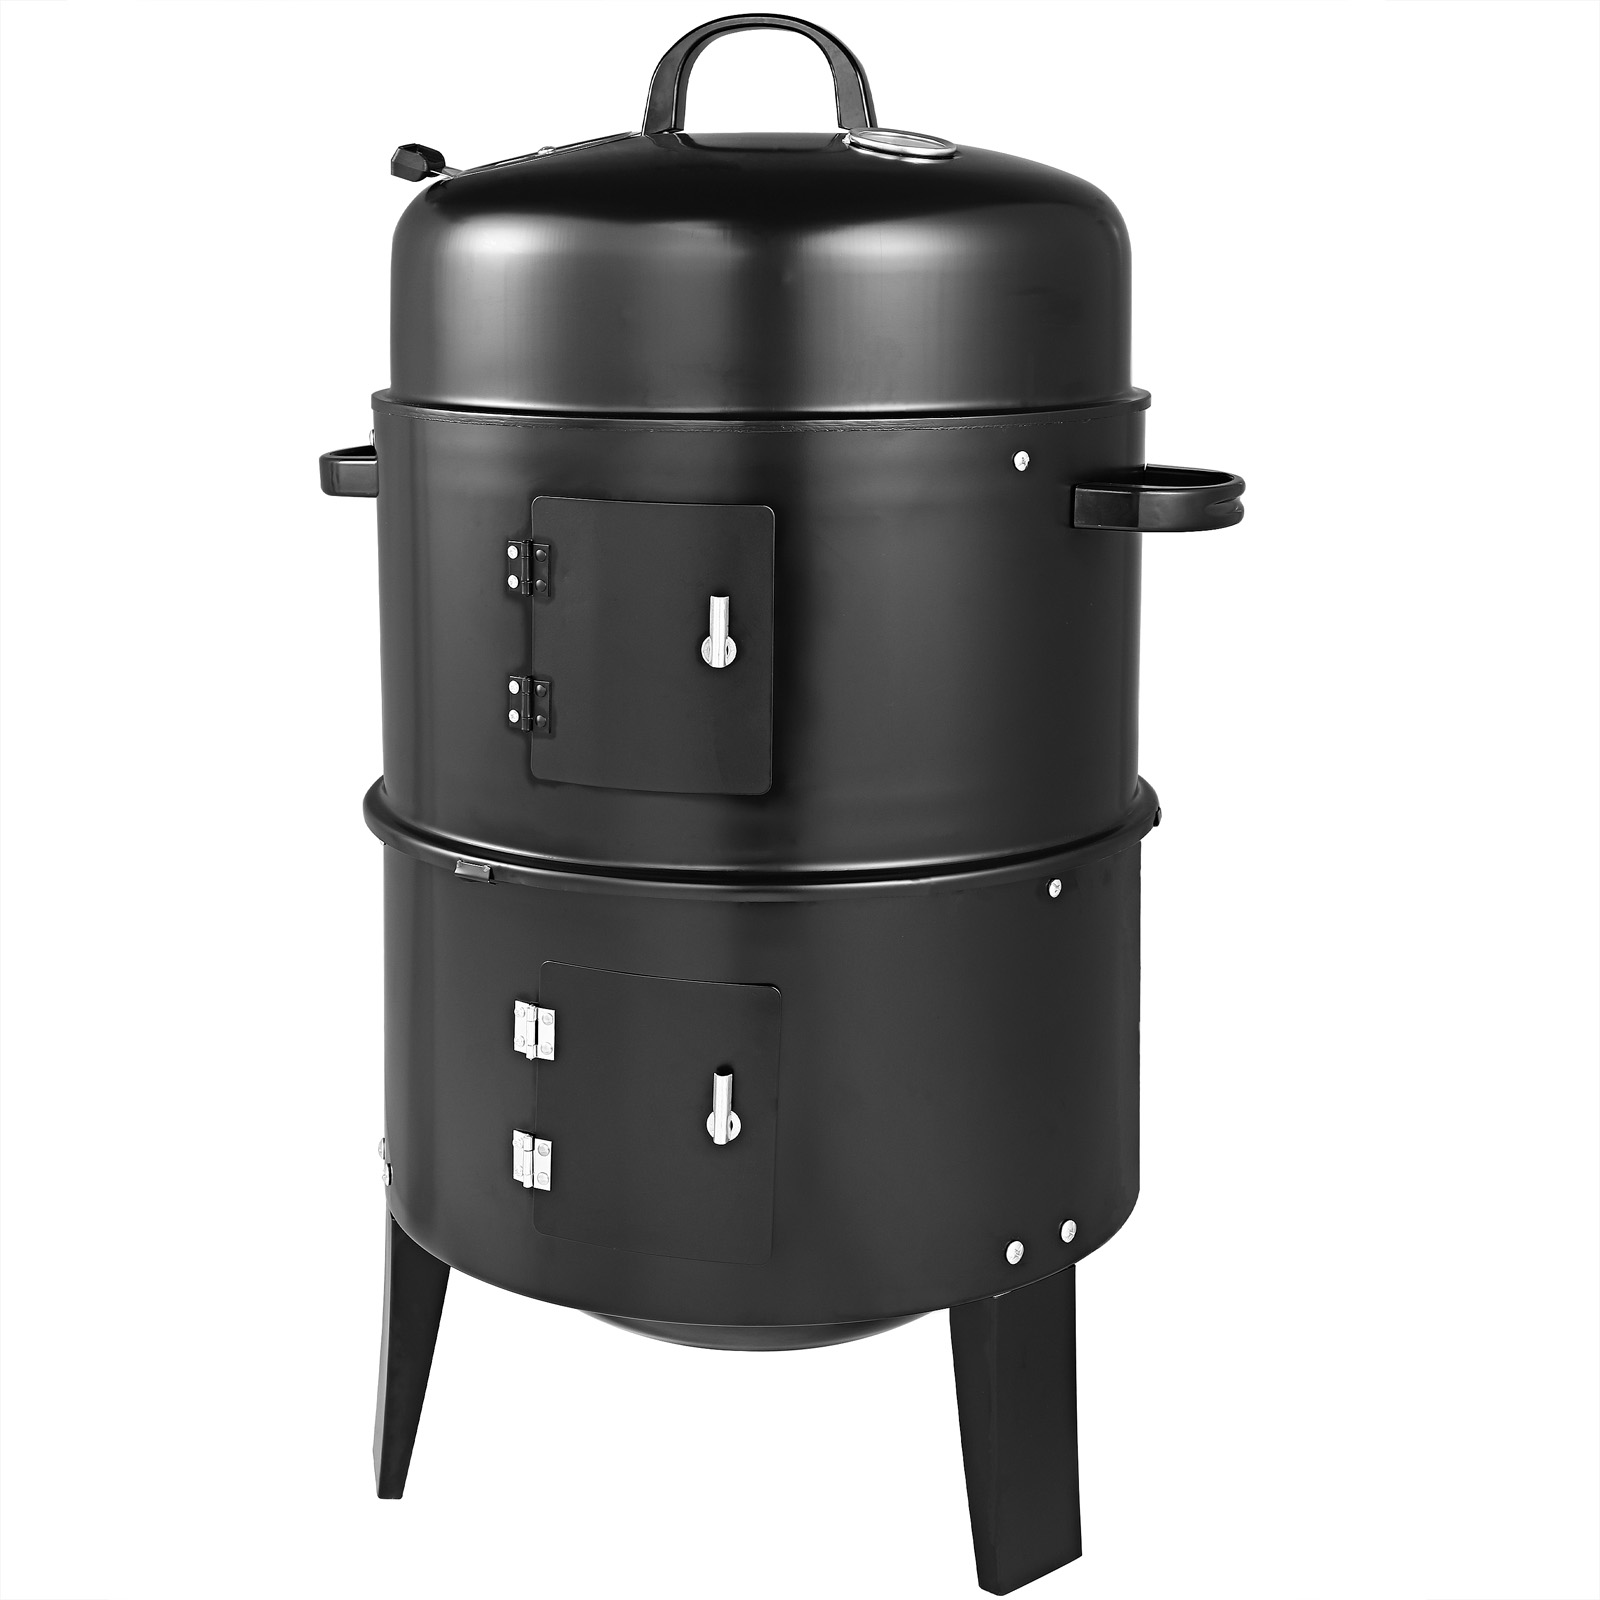 bbq r ucherofen smoker grill grillofen grilltonne r uchergrill kohlegrill ofen ebay. Black Bedroom Furniture Sets. Home Design Ideas